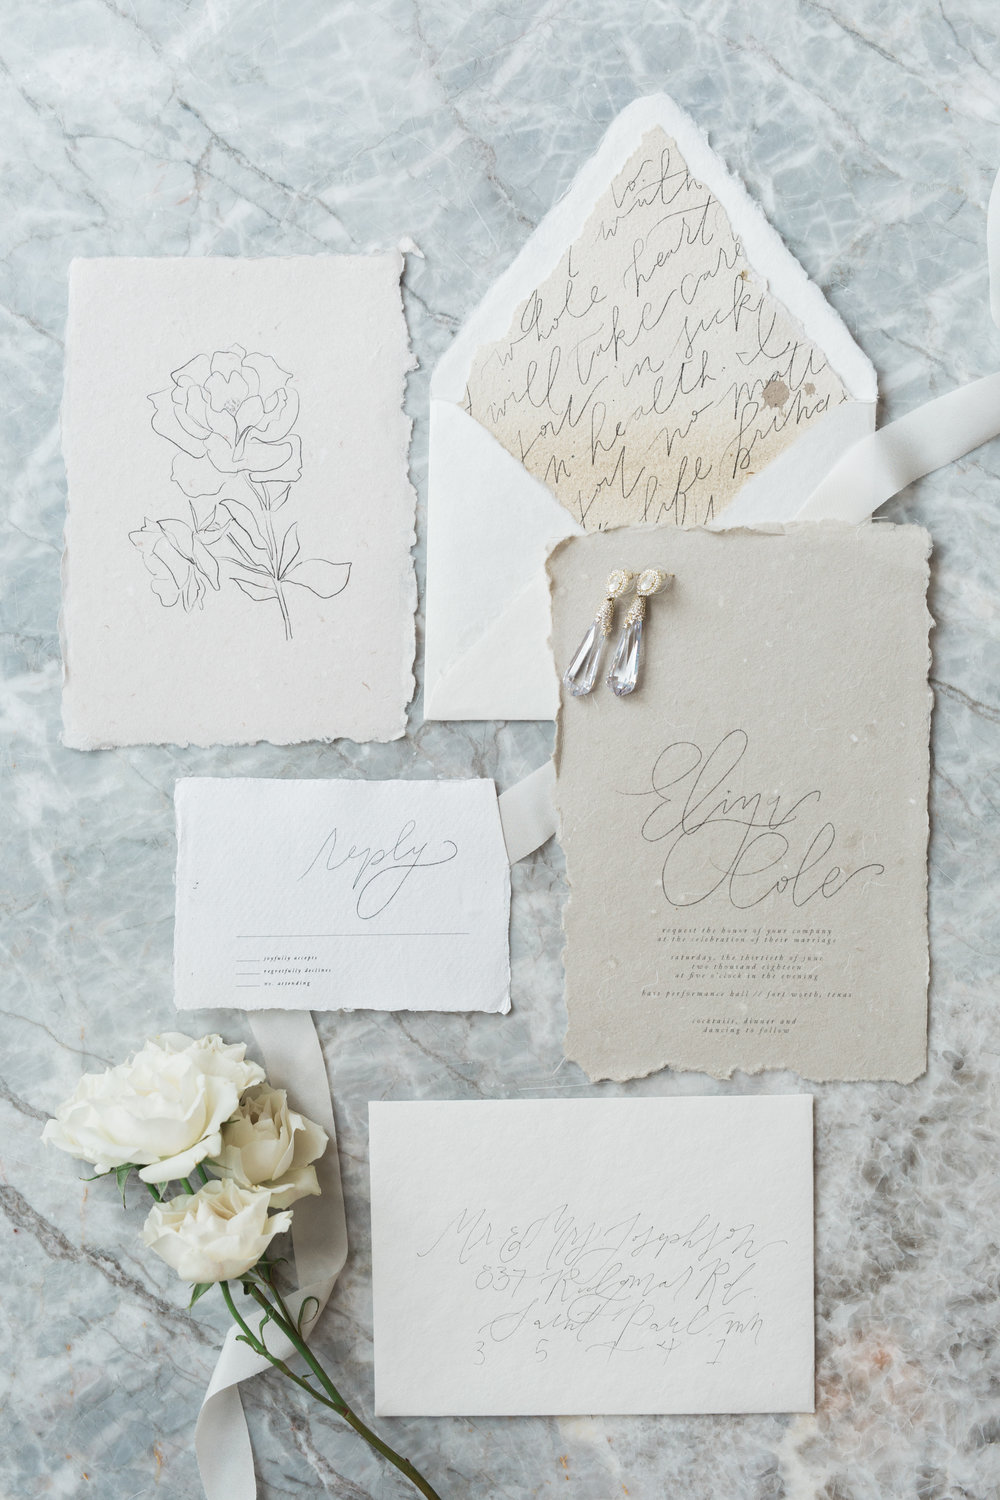 Fine Art Neutral Wedding Invitations | European Inspired Winter Wedding